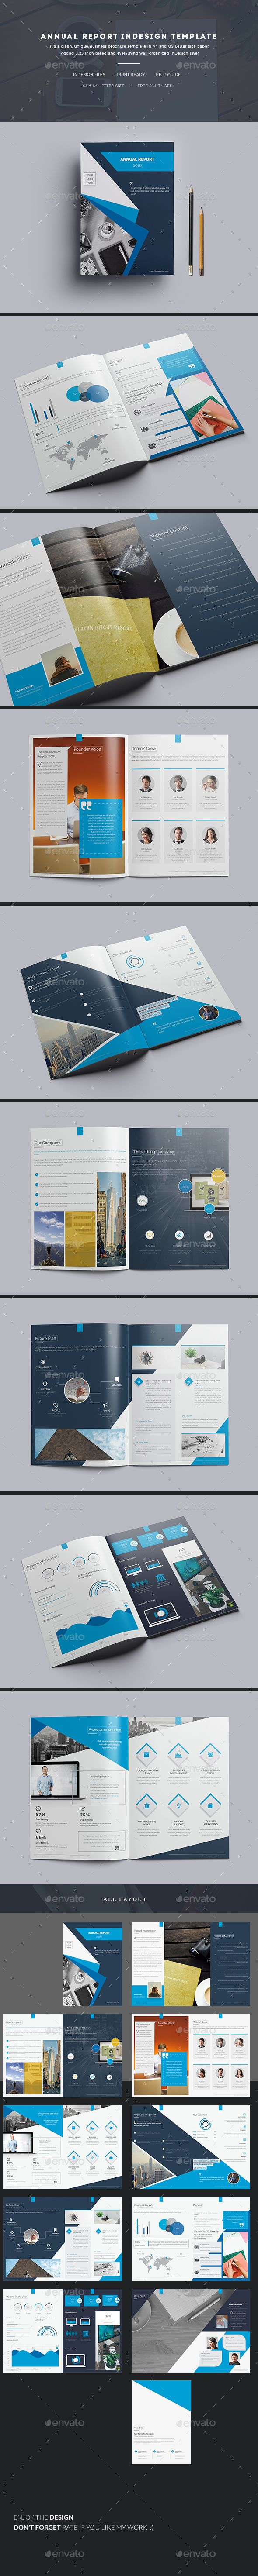 Annual Report   — InDesign Template #creative #review #modern • Download ➝ https://graphicriver.net/item/annual-report-indesign-template-/17798750?ref=pxcr